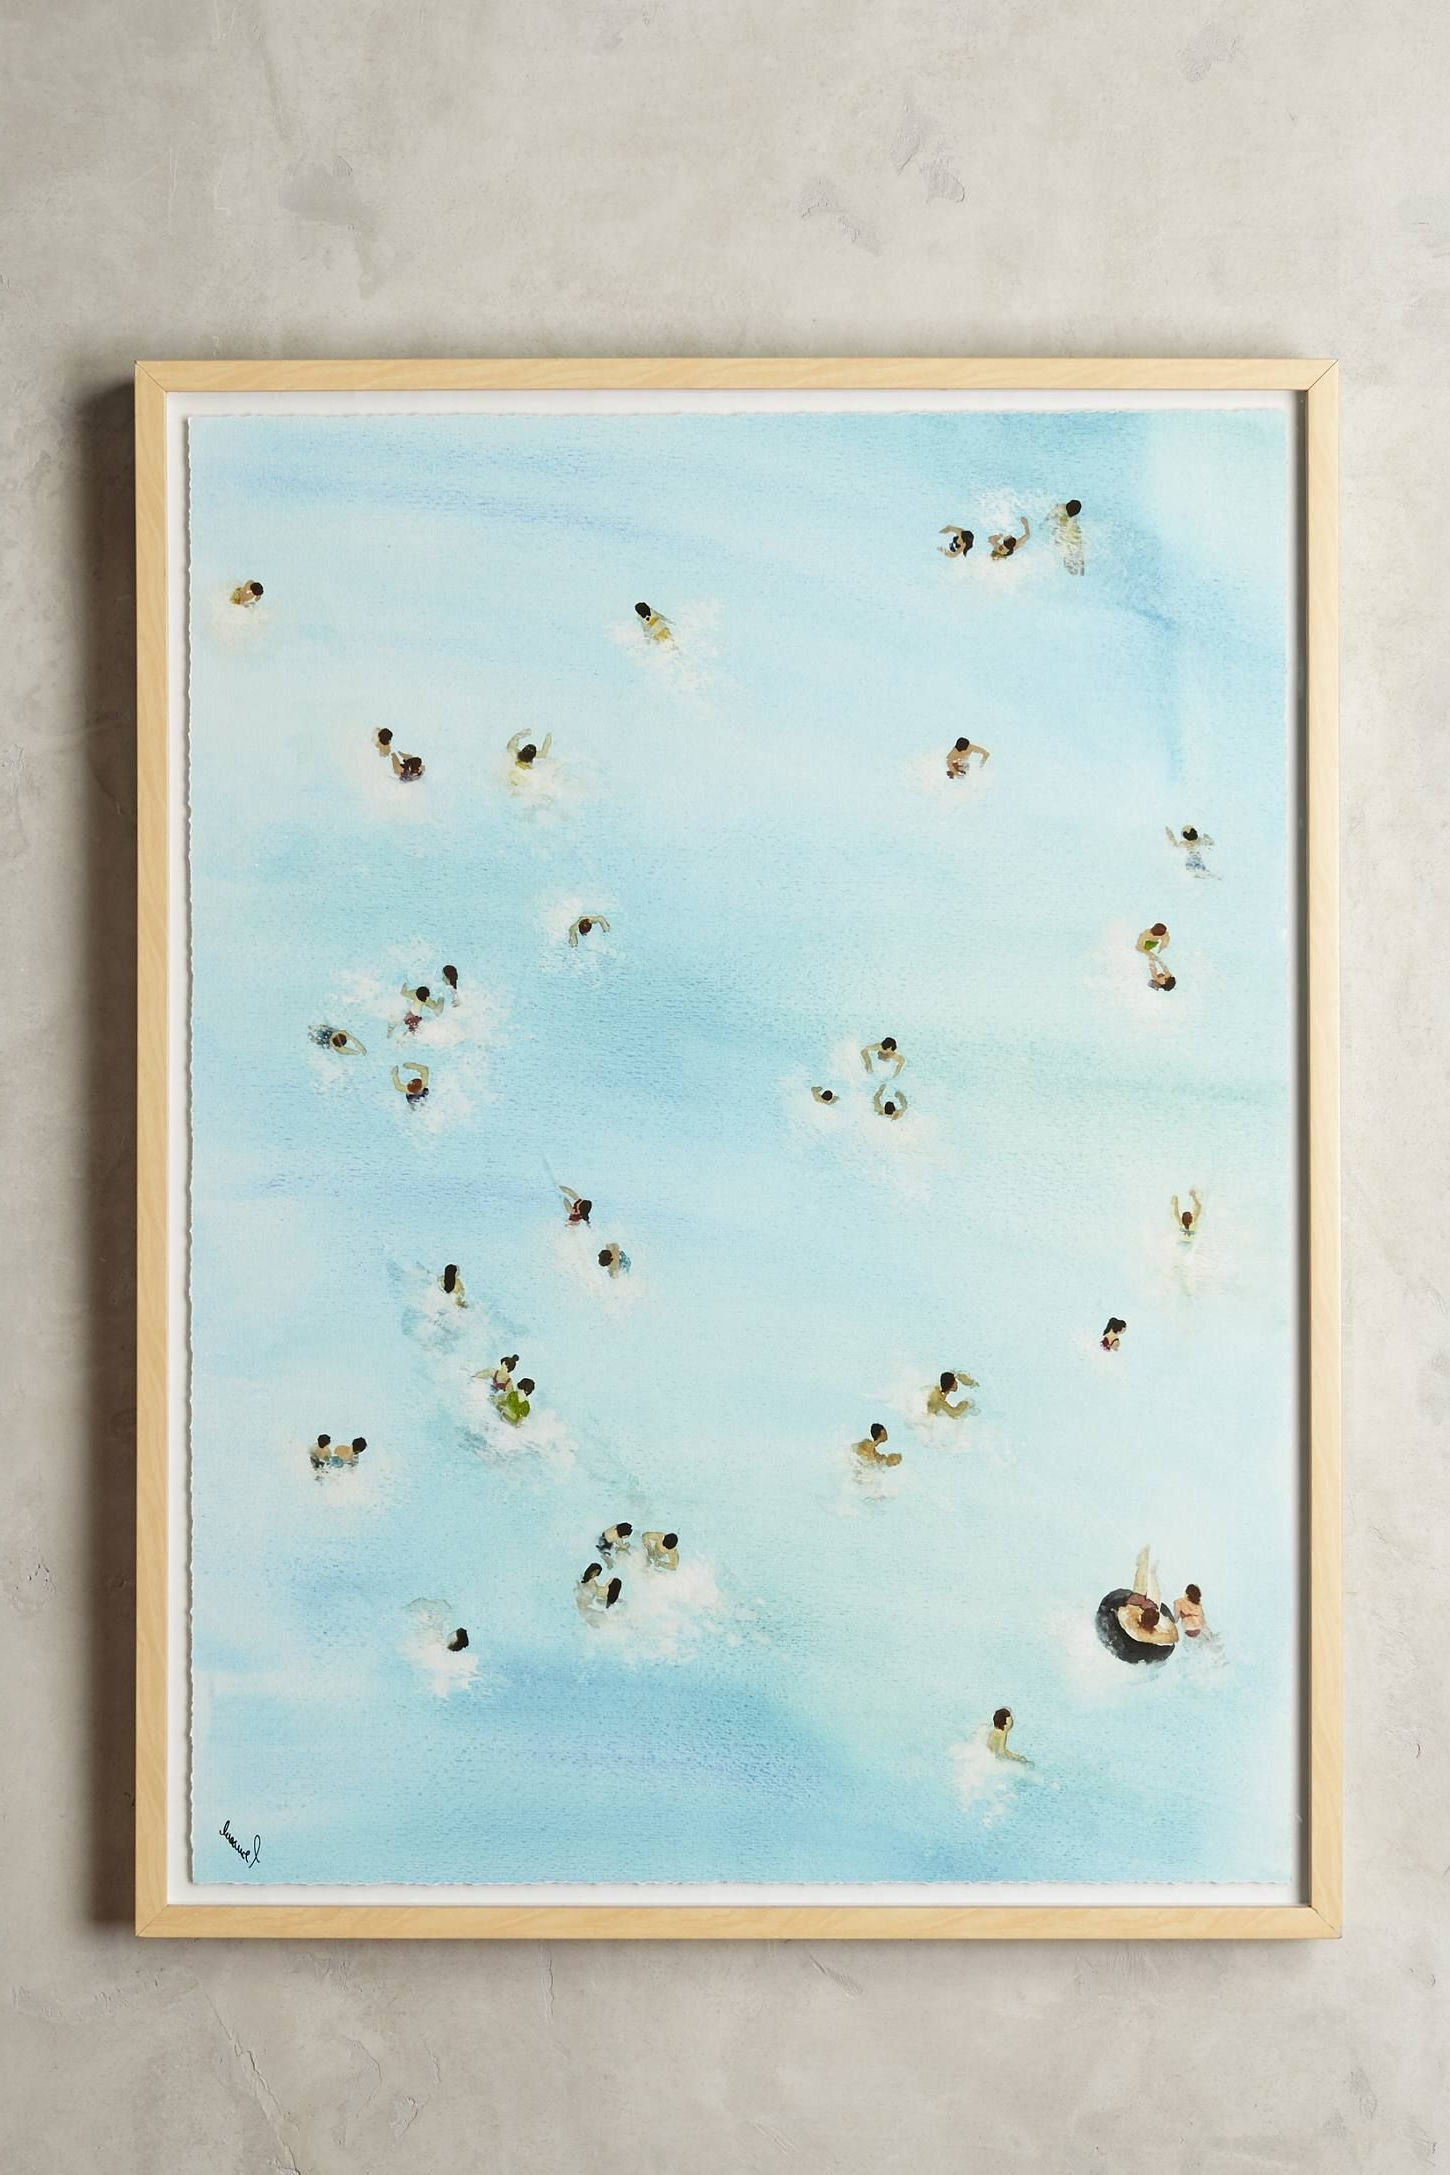 Shop The Swimming Pool Wall Art And More Anthropologie At Intended For Most Popular Anthropologie Wall Art (View 14 of 15)